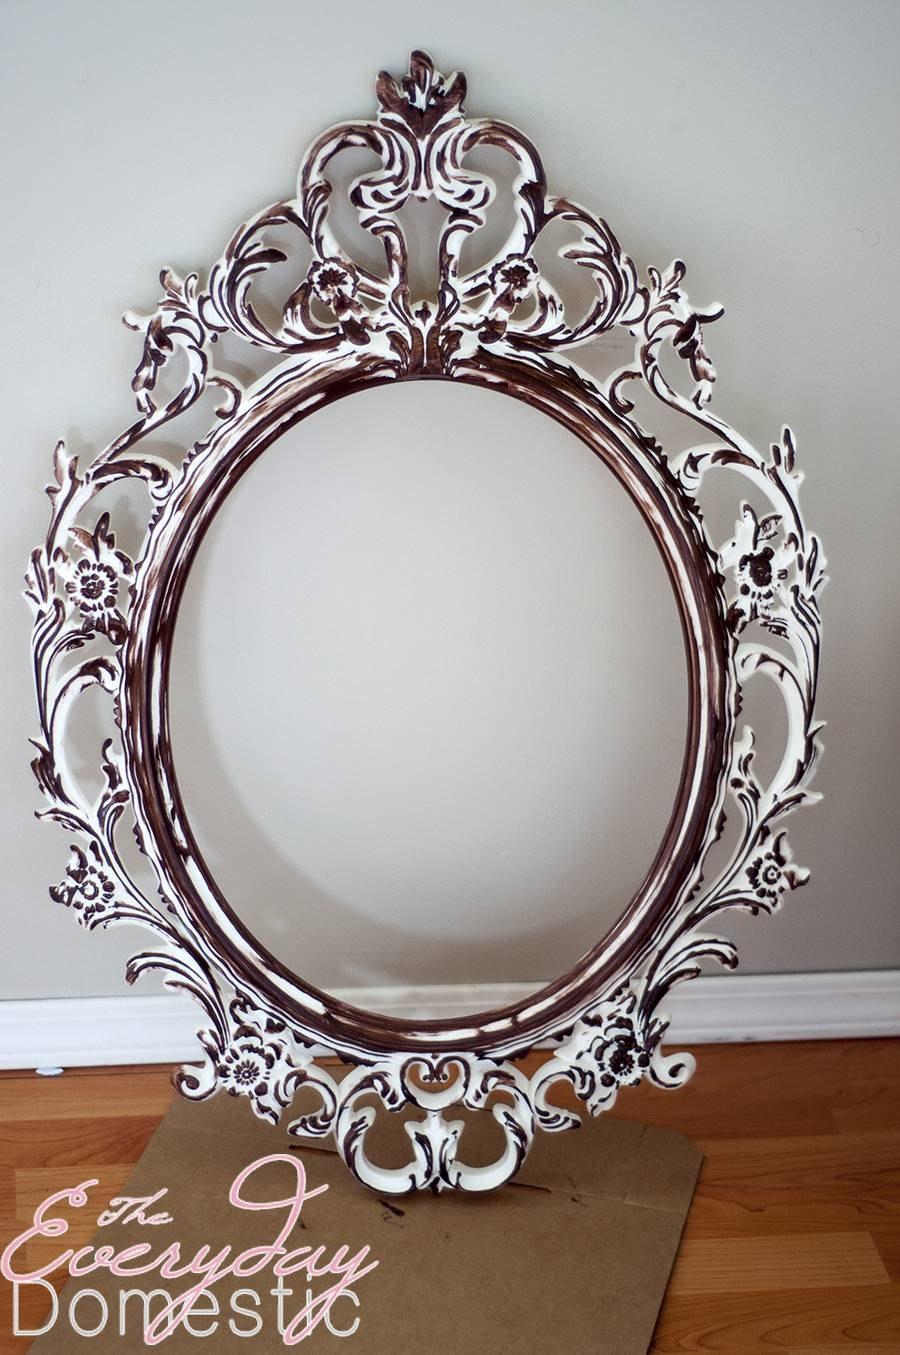 Accessories: Fair Picture Of Vintage Chic Ornate Silver Metallic pertaining to Silver Oval Wall Mirrors (Image 2 of 25)